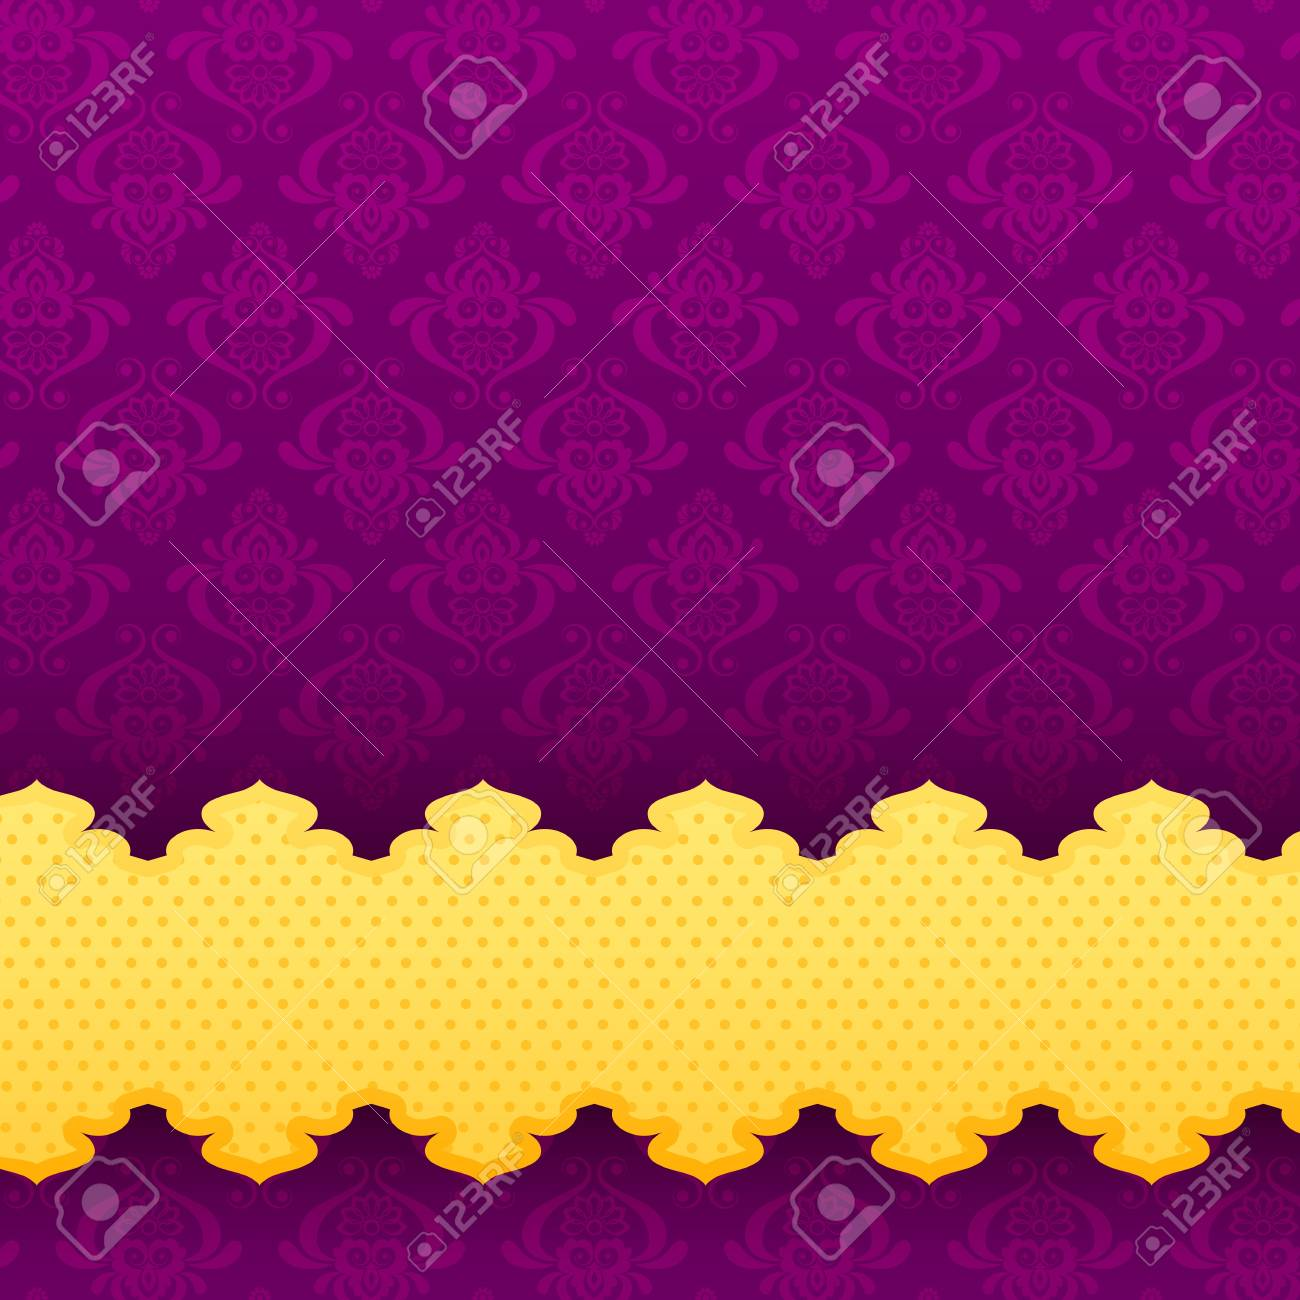 Seamless Floral Pattern Stock Photo - 20916136